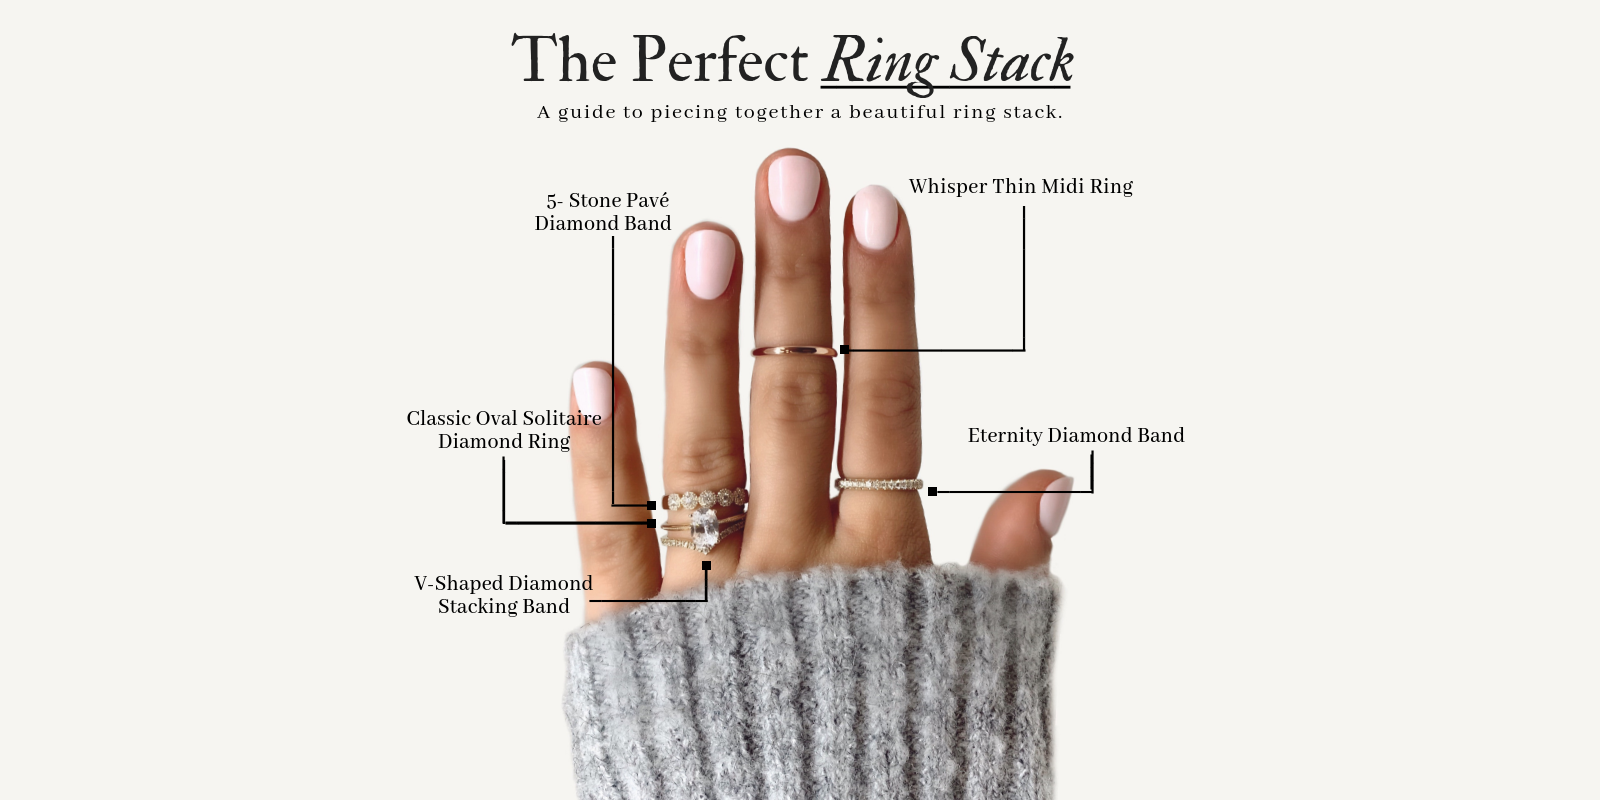 The Perfect Ring Stack